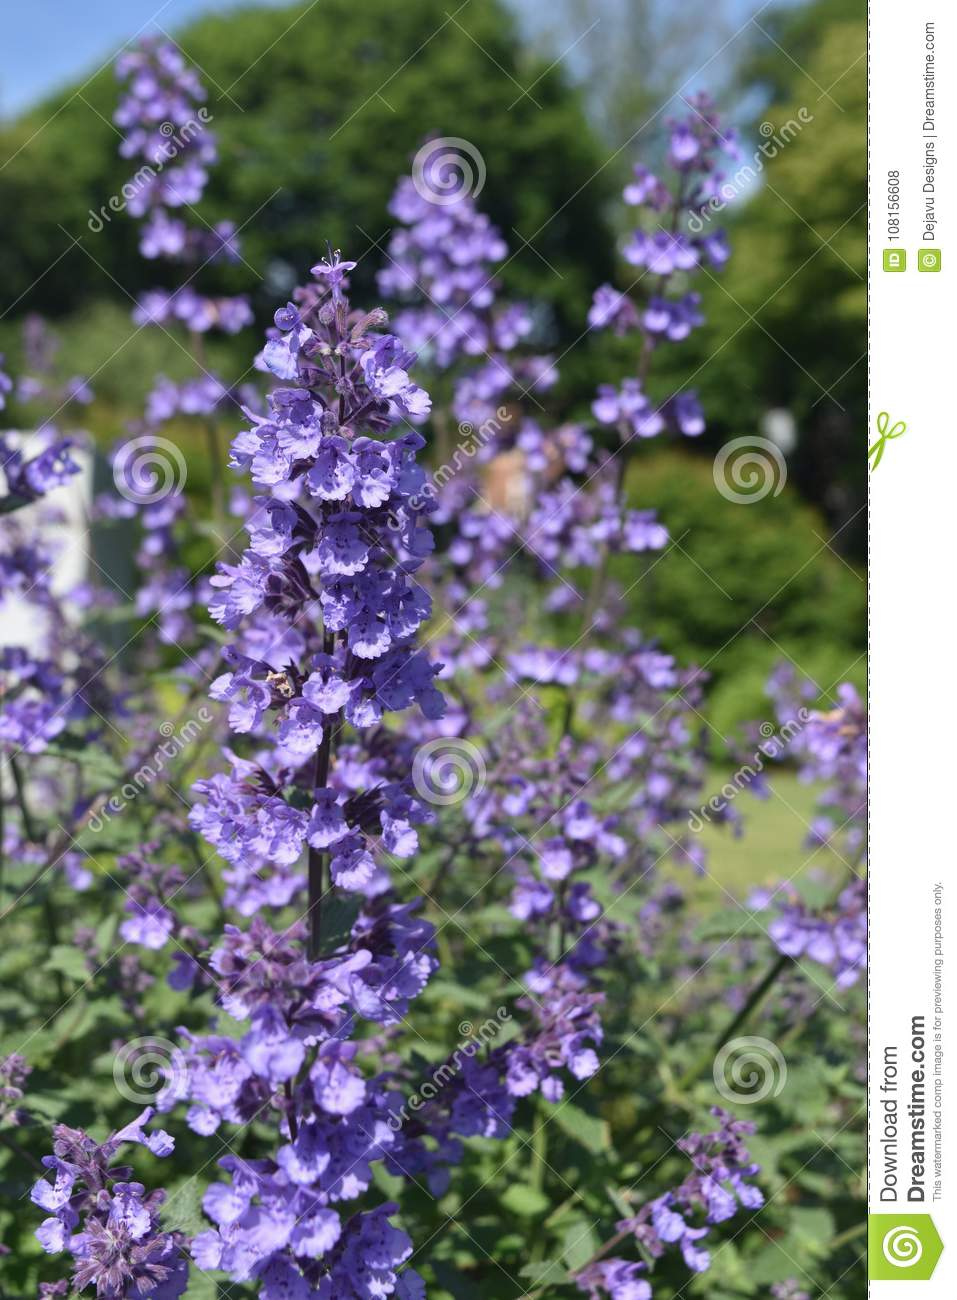 Really beautiful lavender flowers in the spring stock photo image download really beautiful lavender flowers in the spring stock photo image of bloom flowering izmirmasajfo